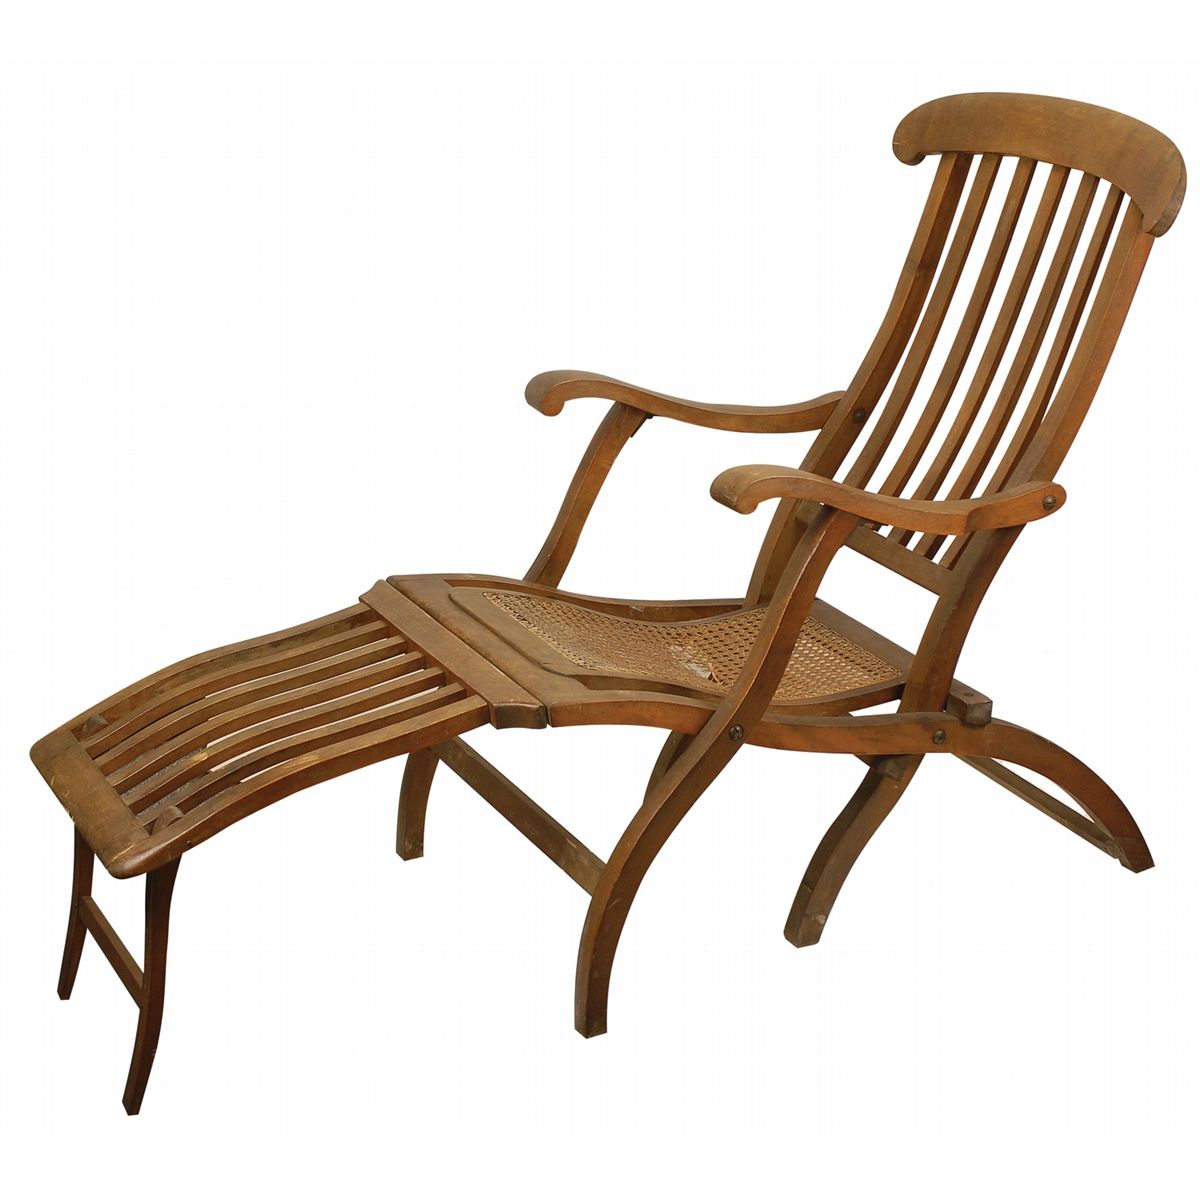 Benjamin Guggenheim's Deck Chair